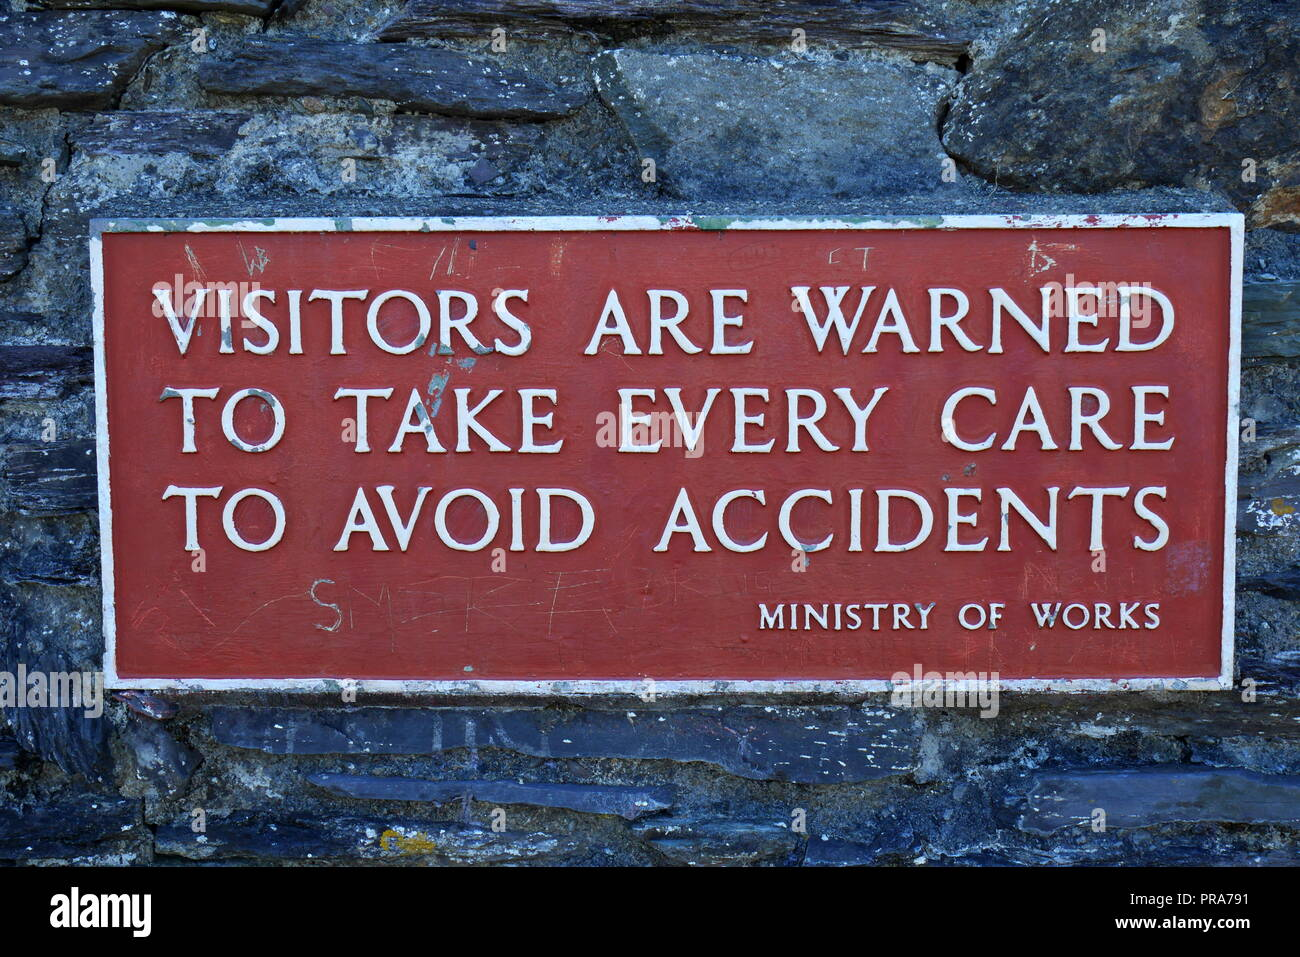 Ministry of Works warning sign: Visitors are warned to take every care to avoid accidents, Dolbadarn Castle, Llanberis, Gwynedd, North Wales, UK - Stock Image